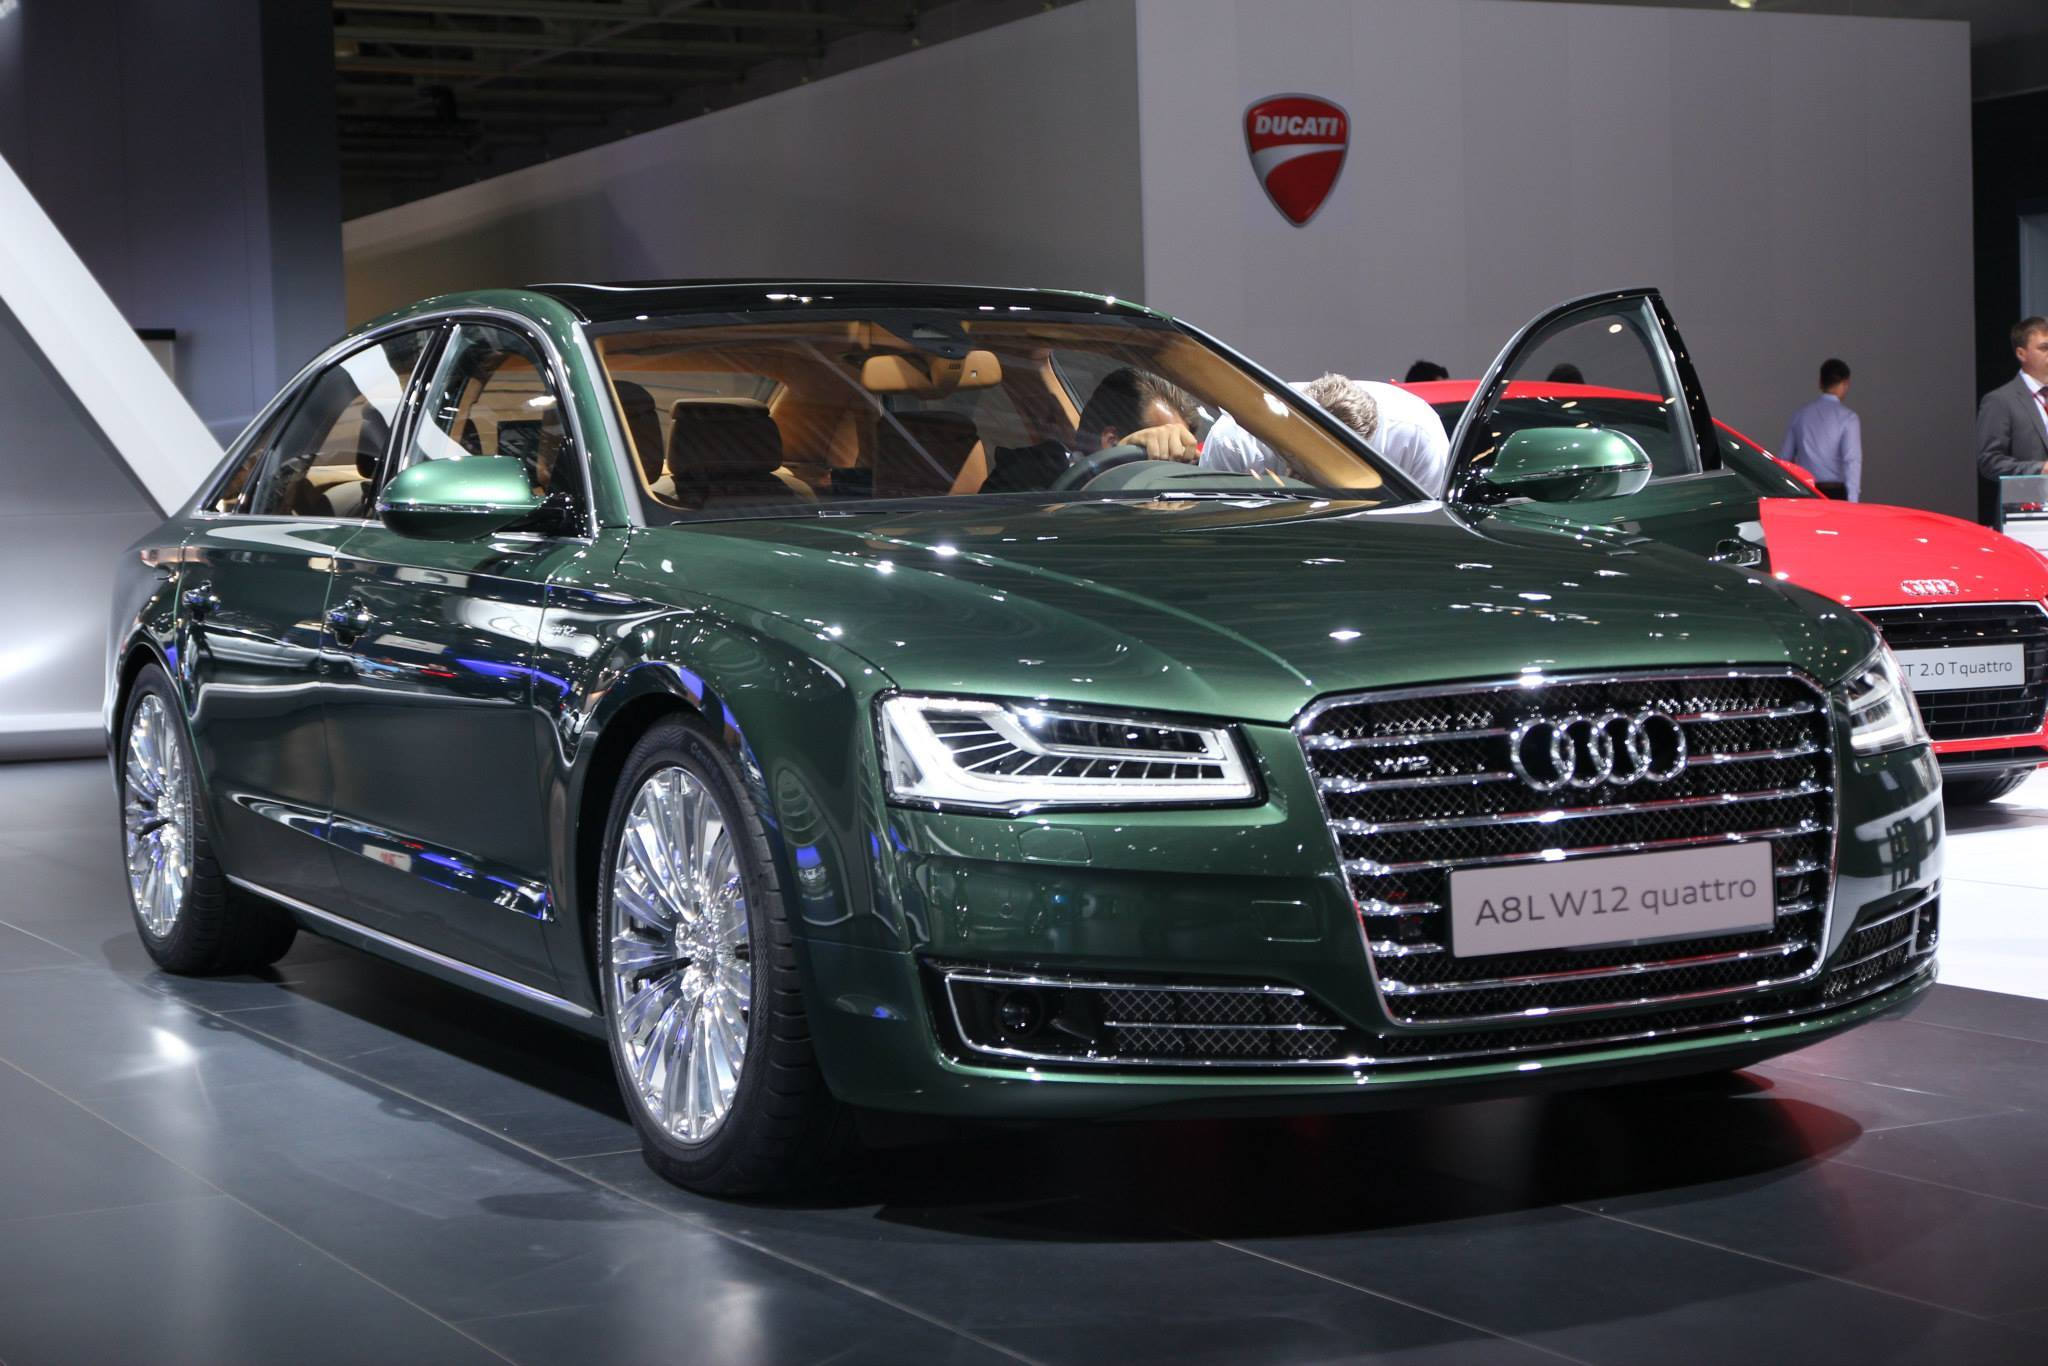 ... Audi A8L W12 in Verdant Green Pearl Has Jaguar Looks ...